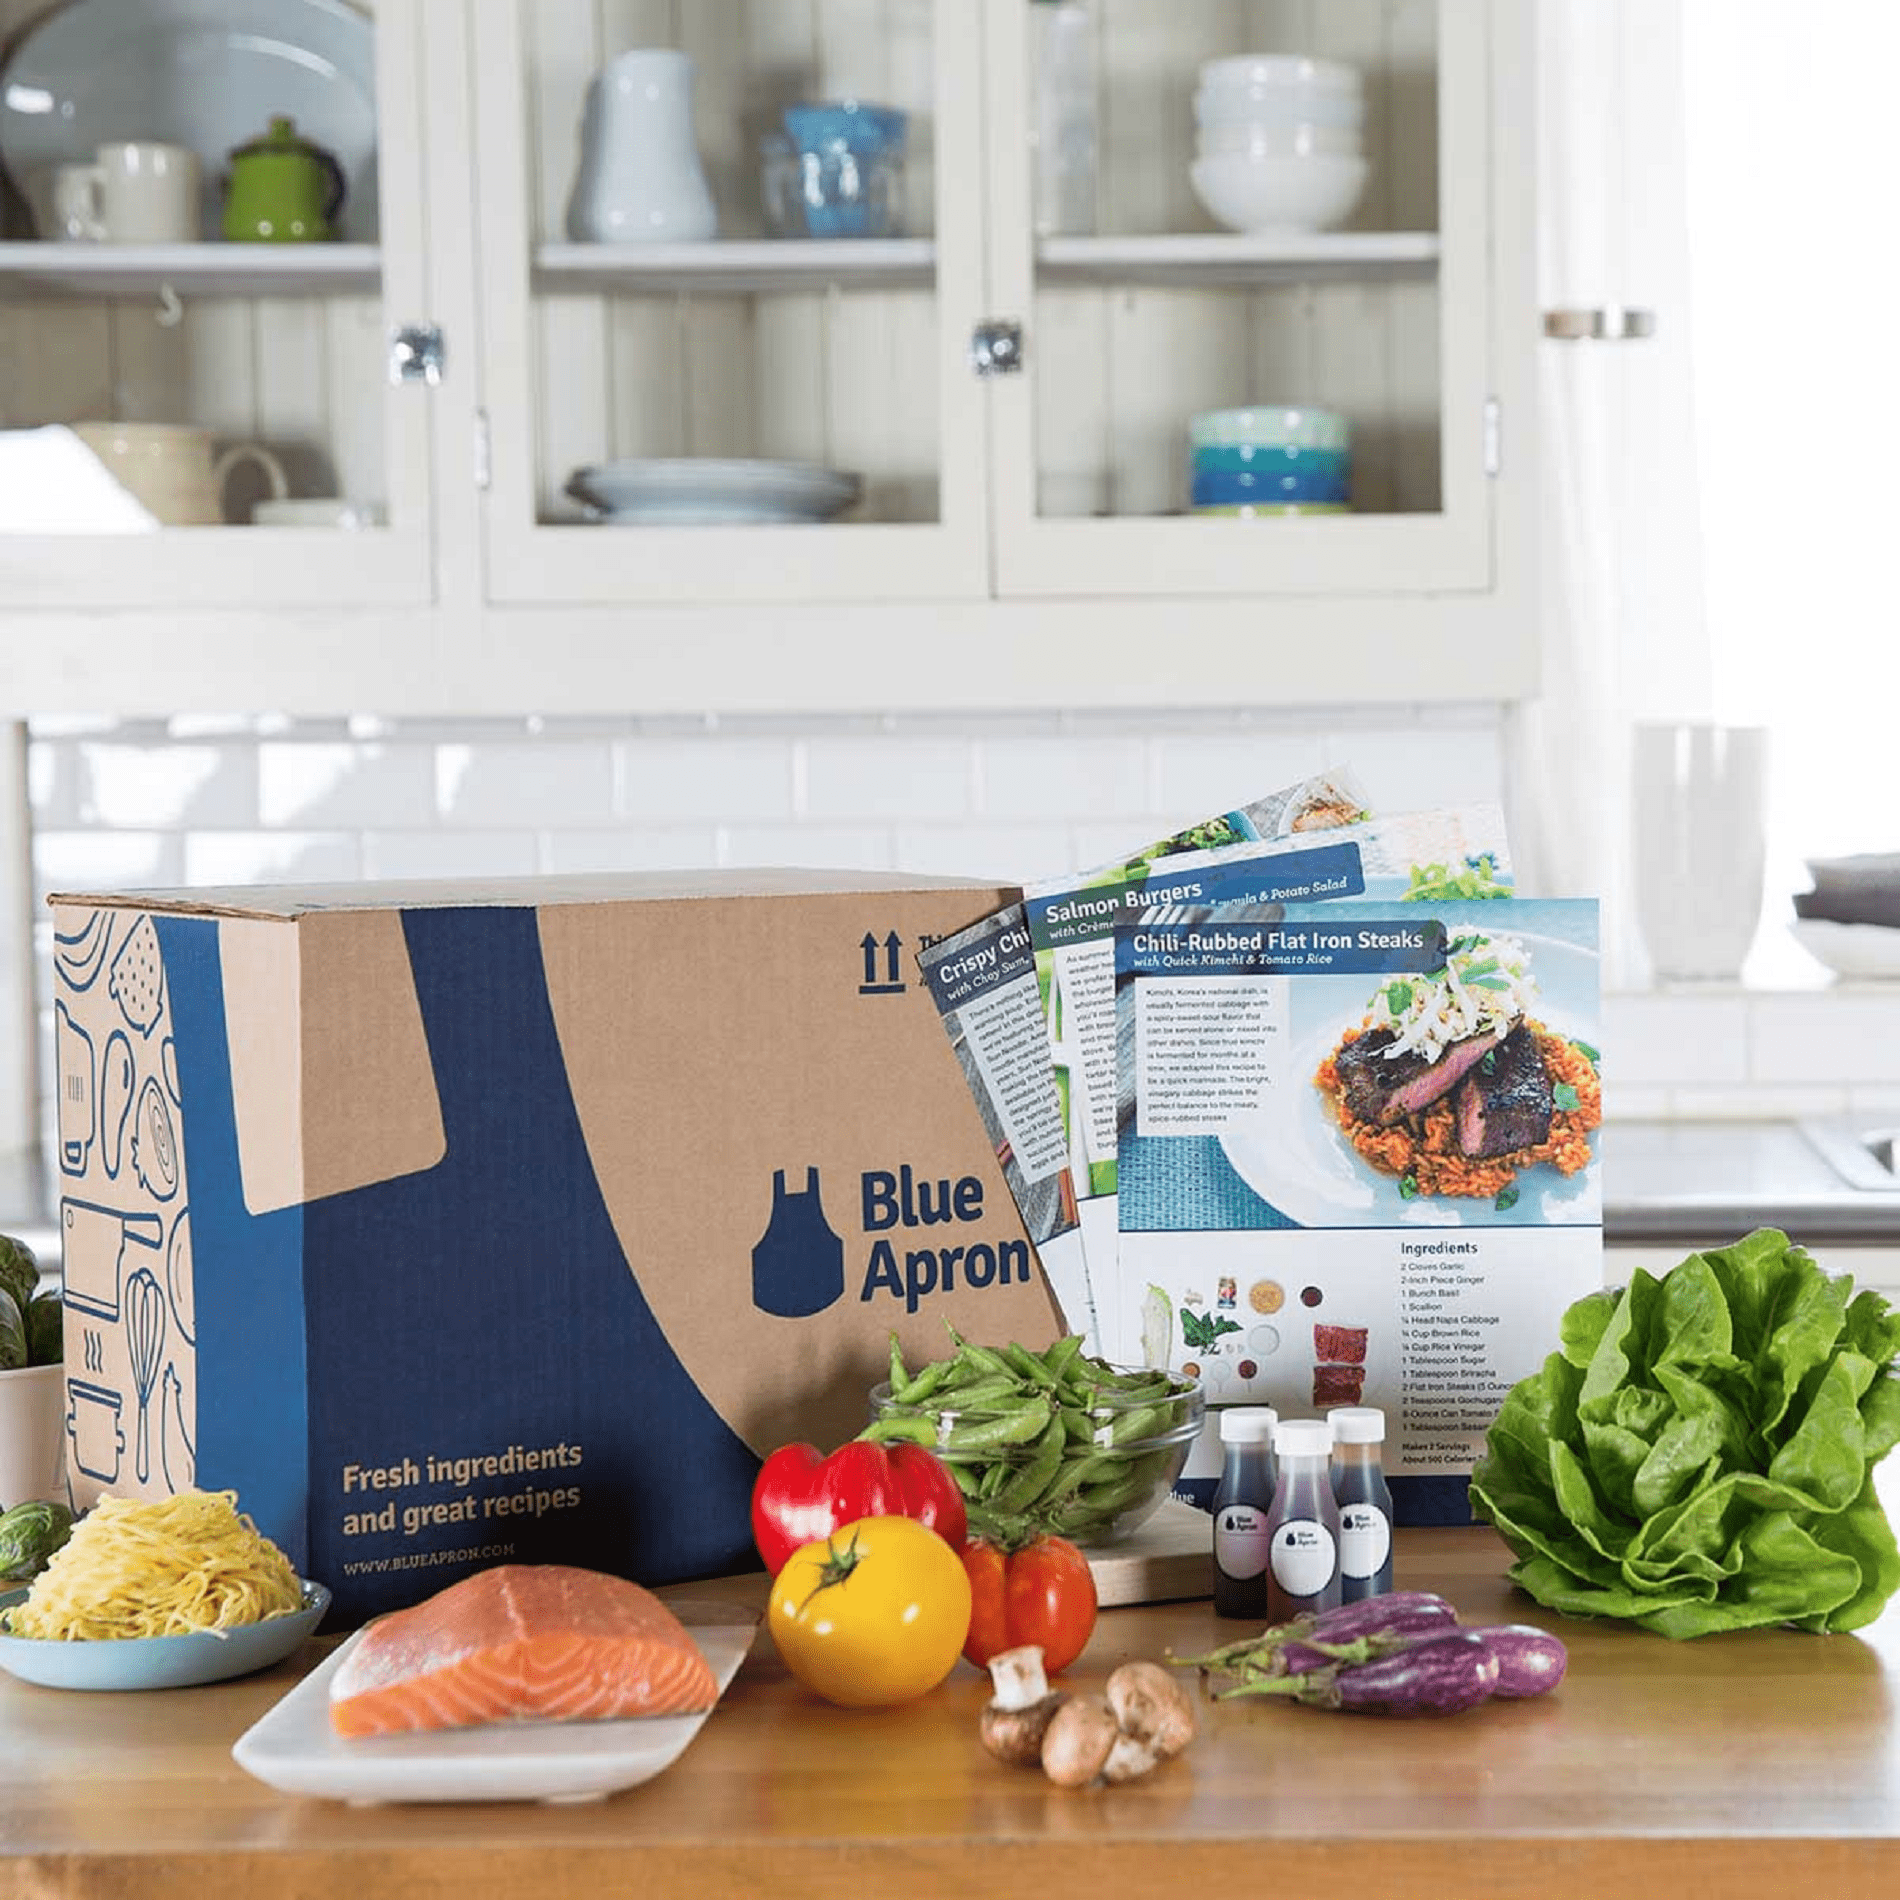 Blue Apron Is Offering Five FREE Meals With Your First Two Boxes On The 2  Person, Just Use This Link To Subscribe U2013 LAST CHANCE TODAY!